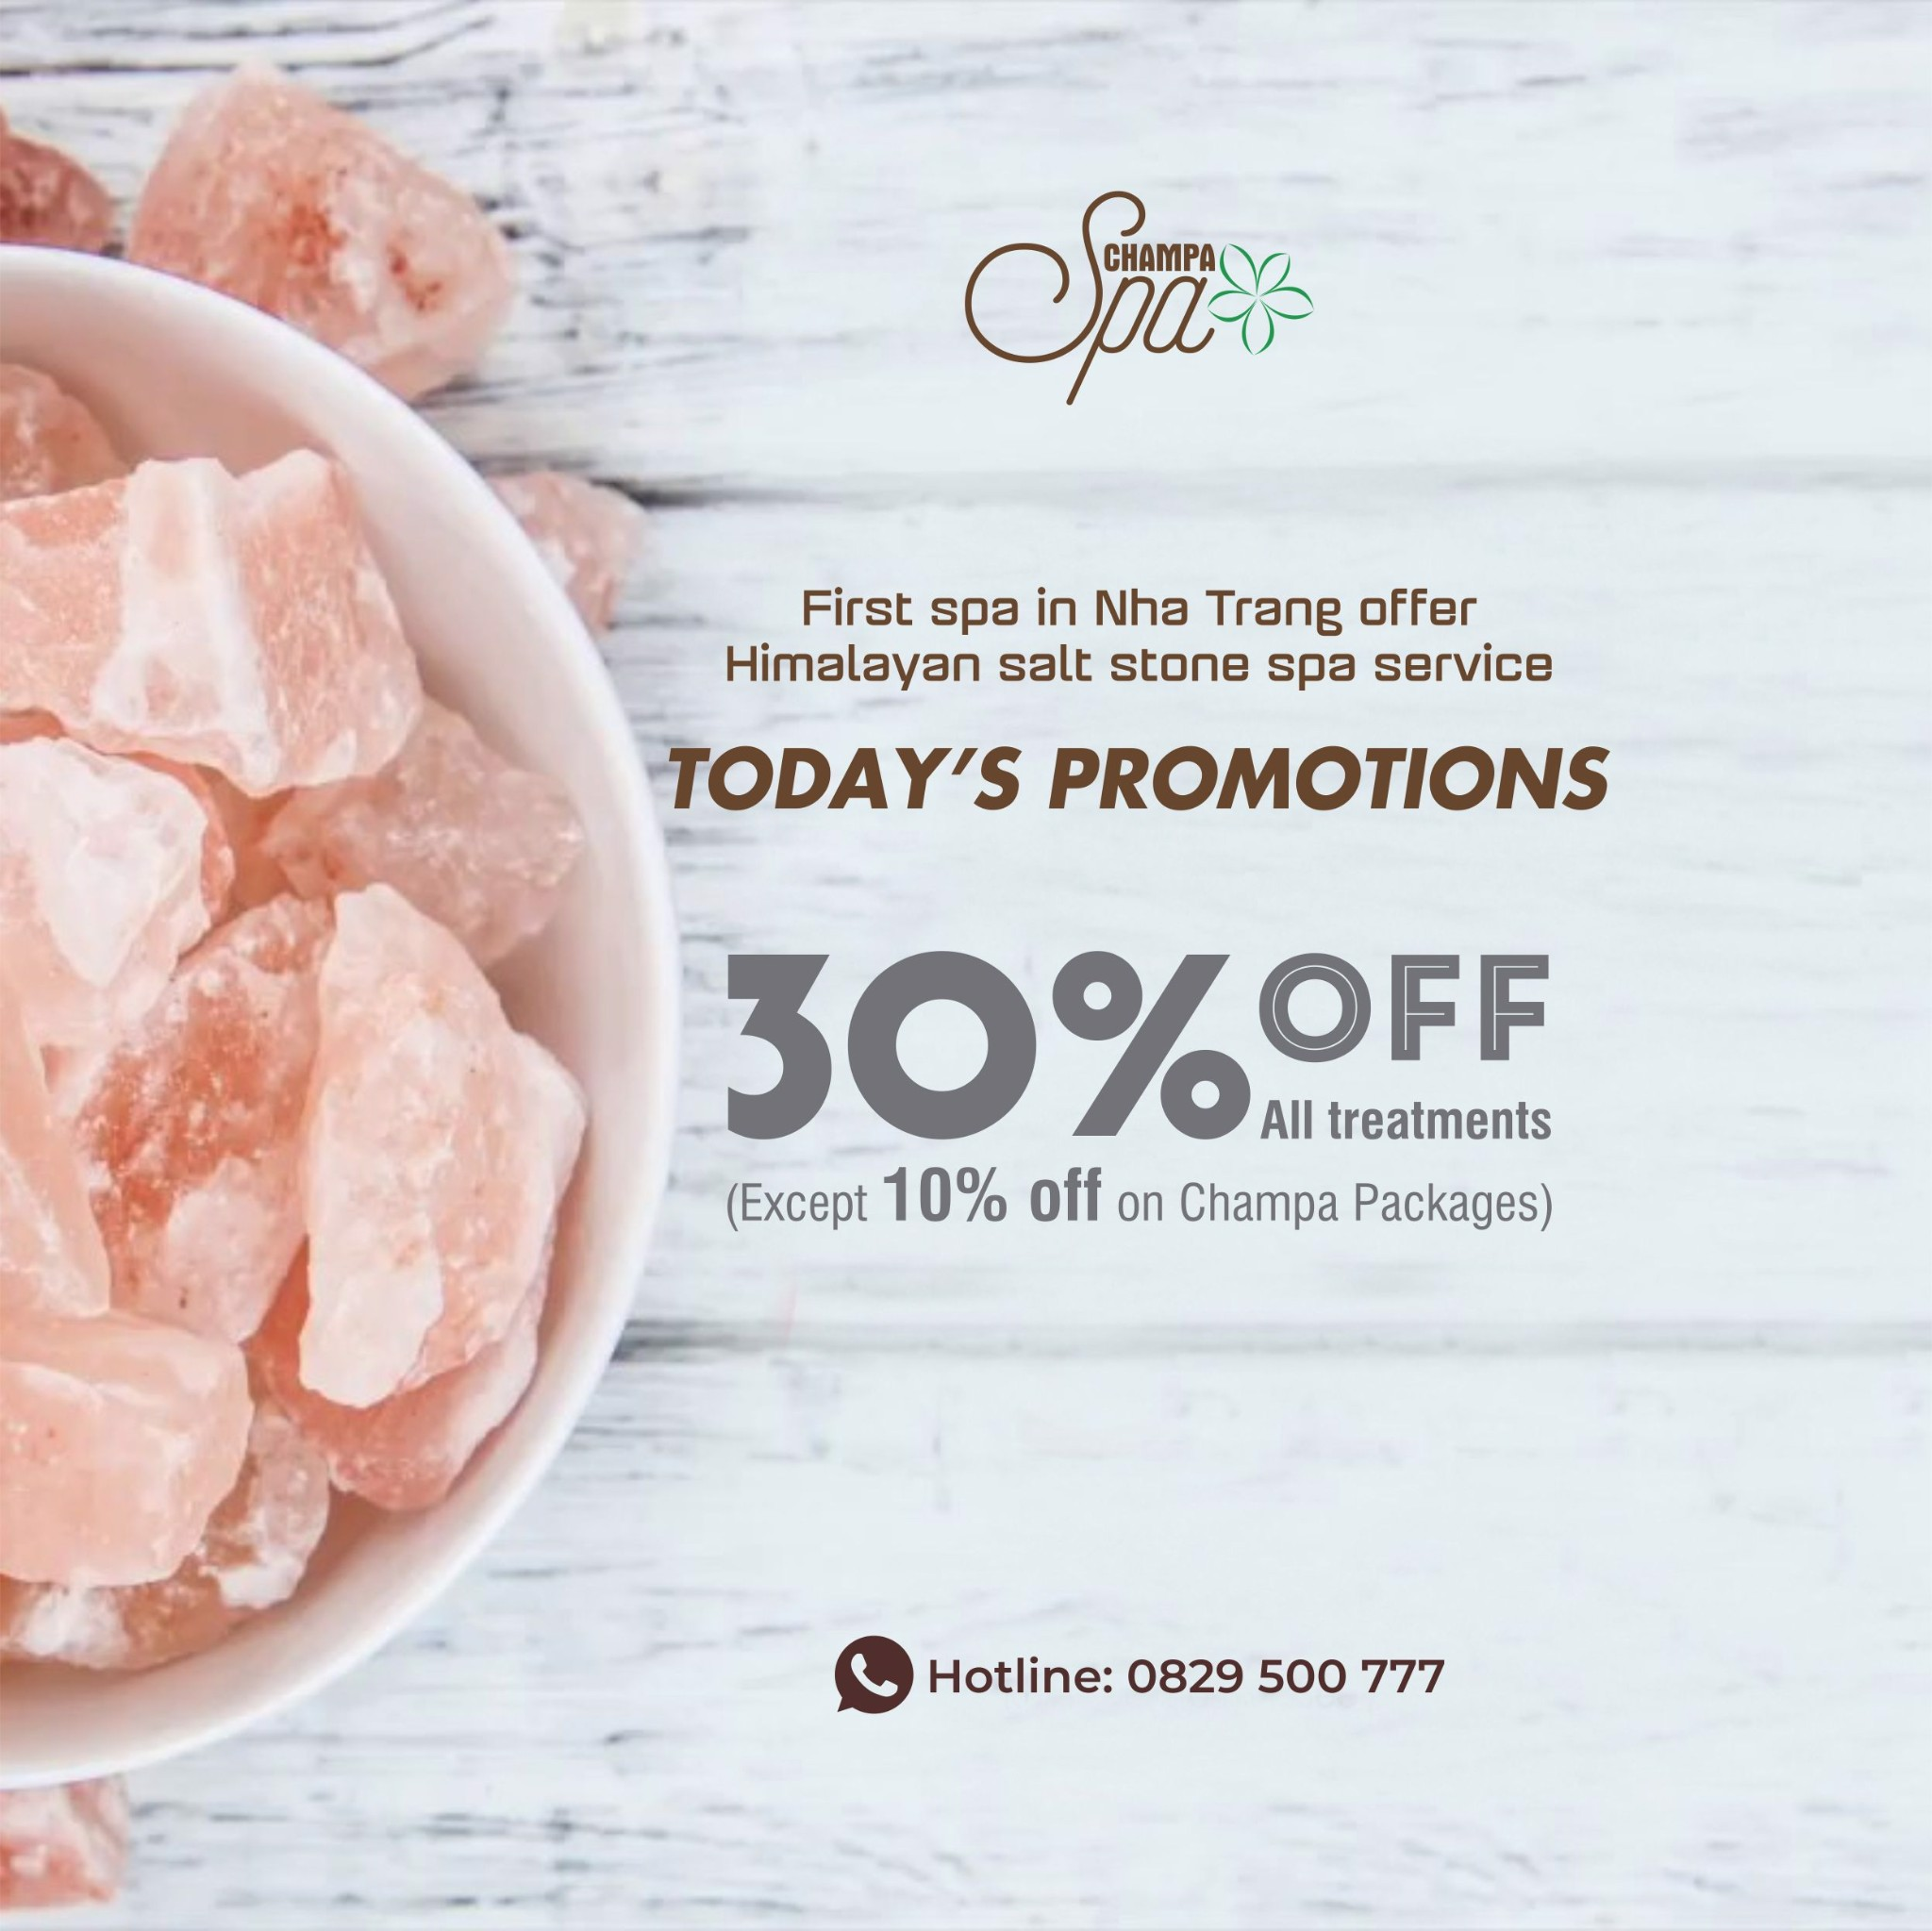 TODAY'S PROMOTION AT CHAMPA SPA